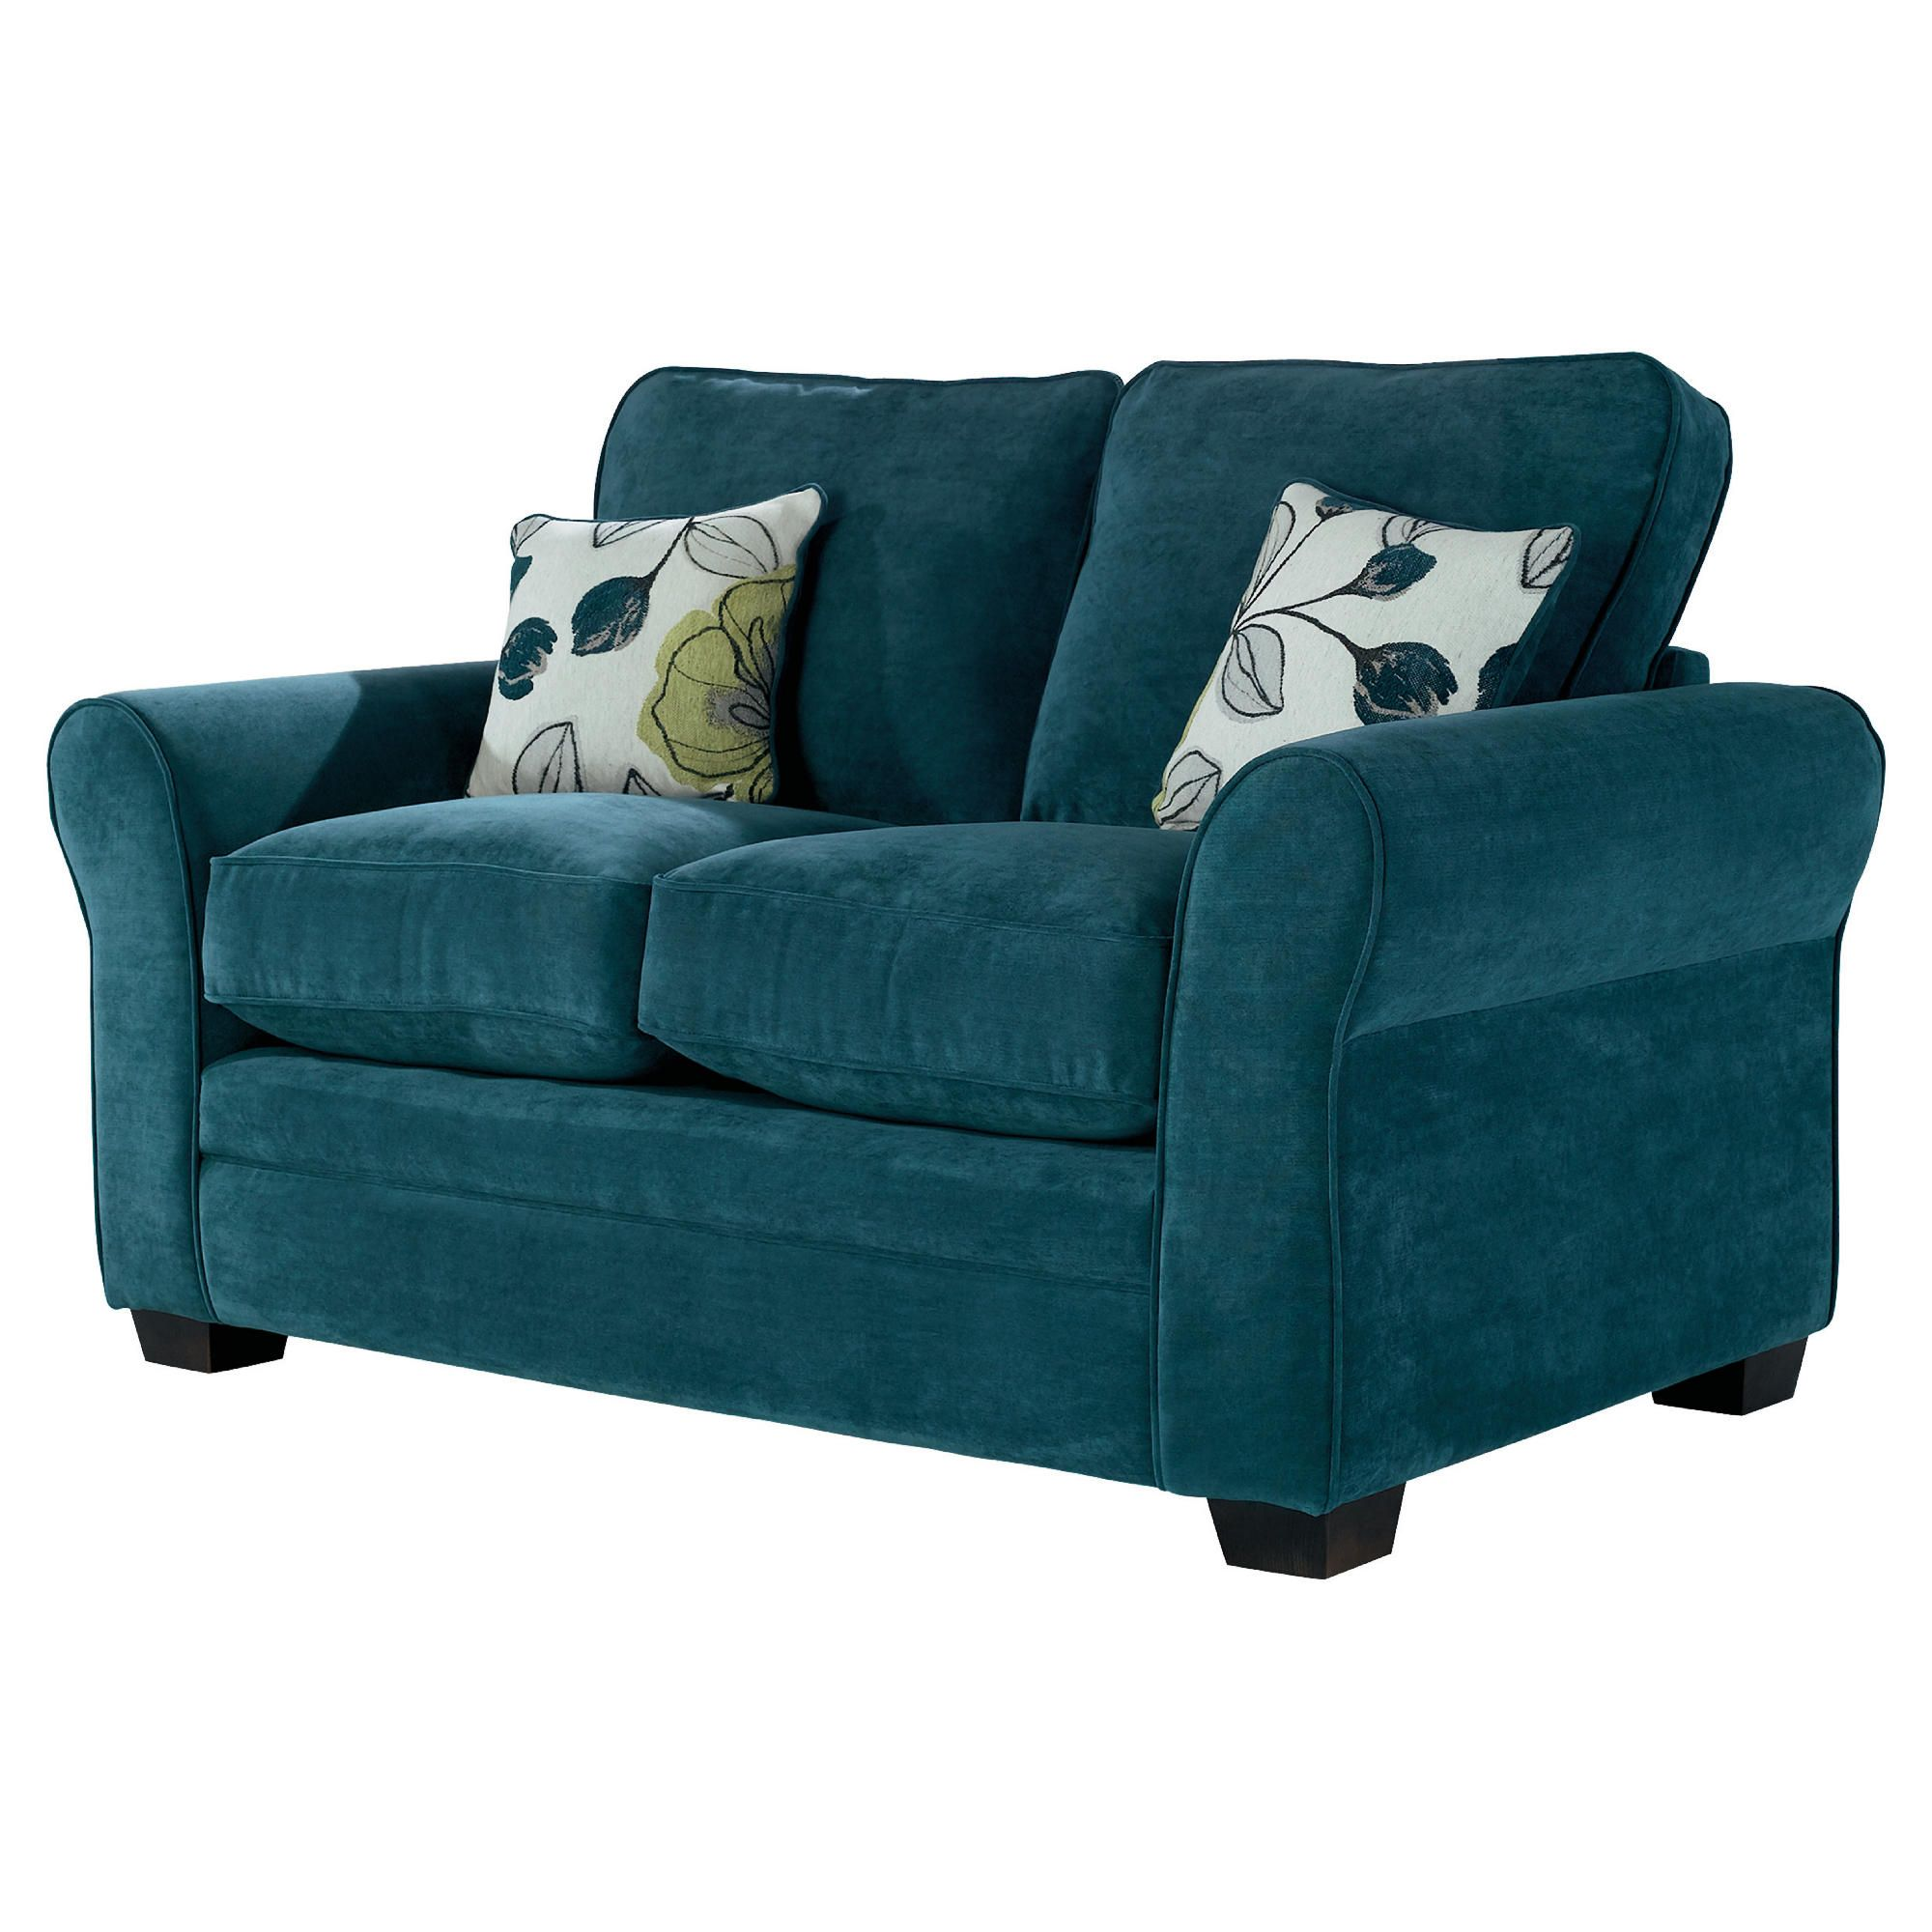 Amelie Small Fabric Standard Back Sofa, Teal at Tesco Direct